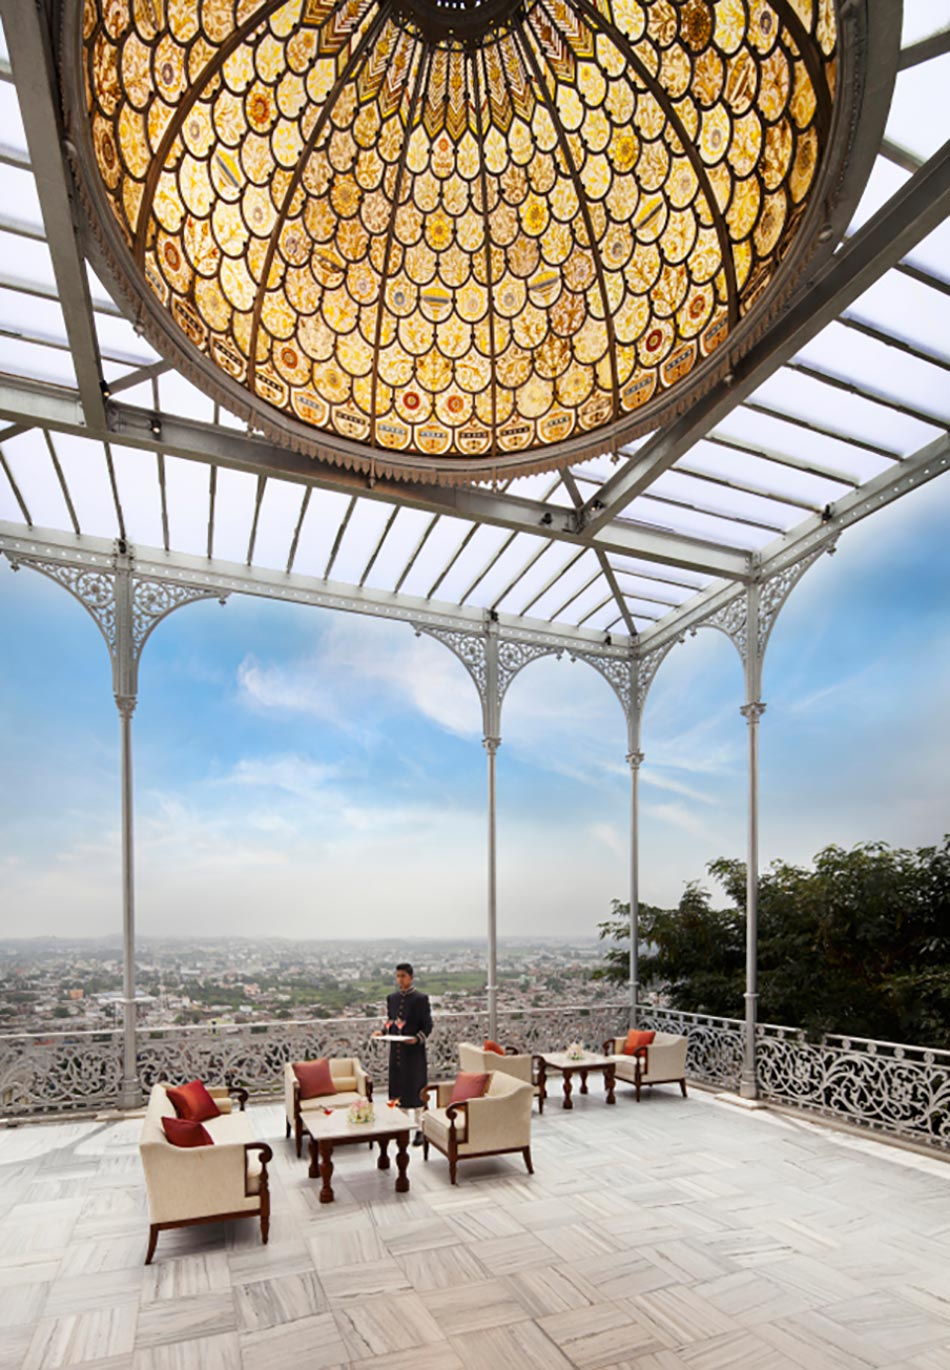 Terrasse à la vue panoramique sur Hyderabad